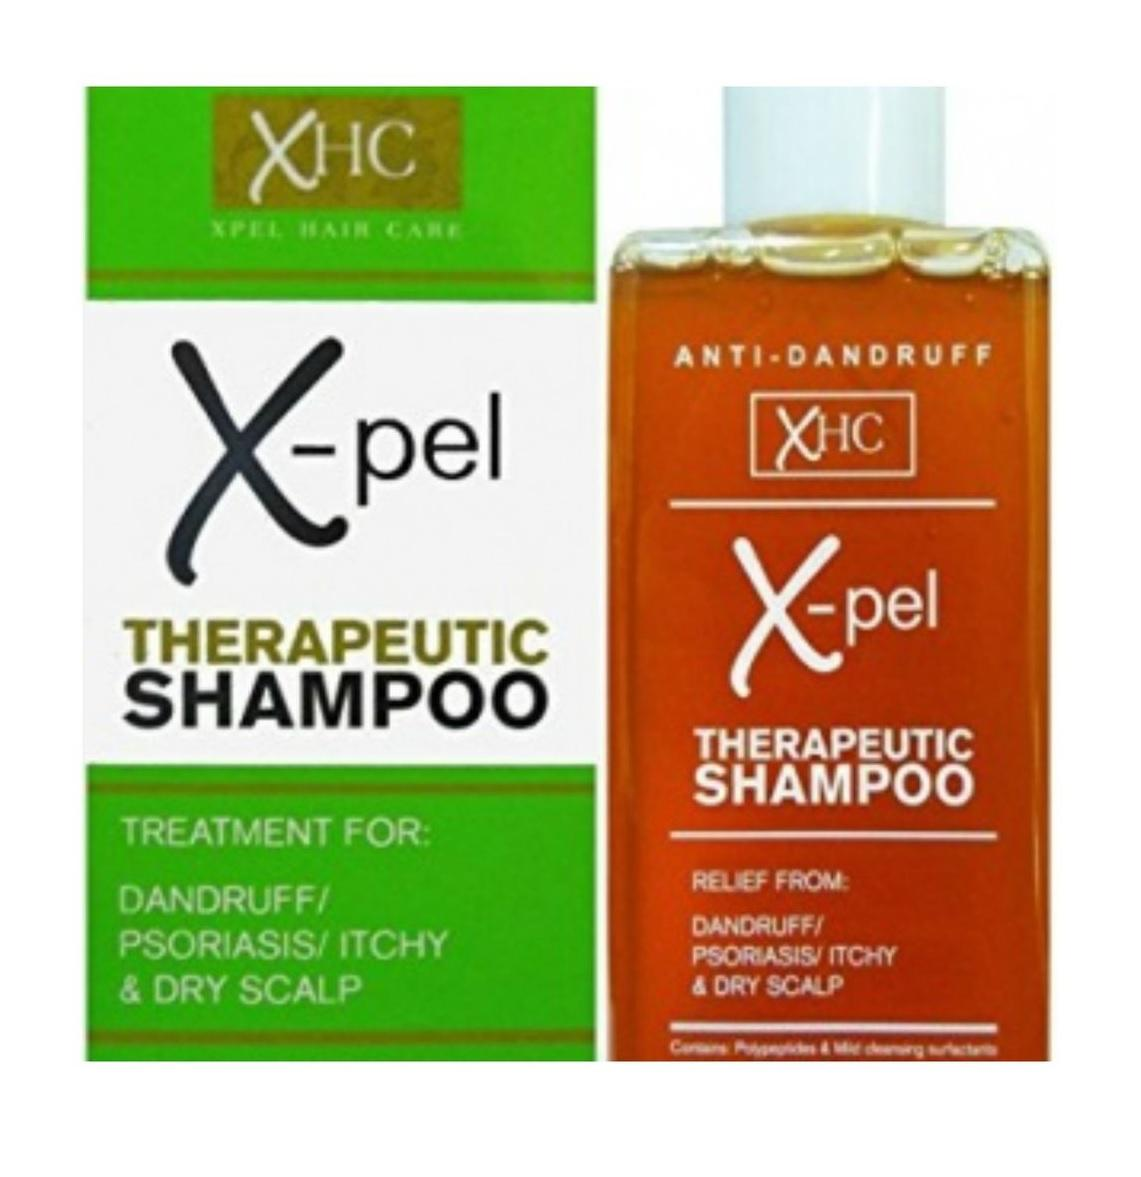 XHC X-pel Shampoo - Therapeutic - 125 ml.